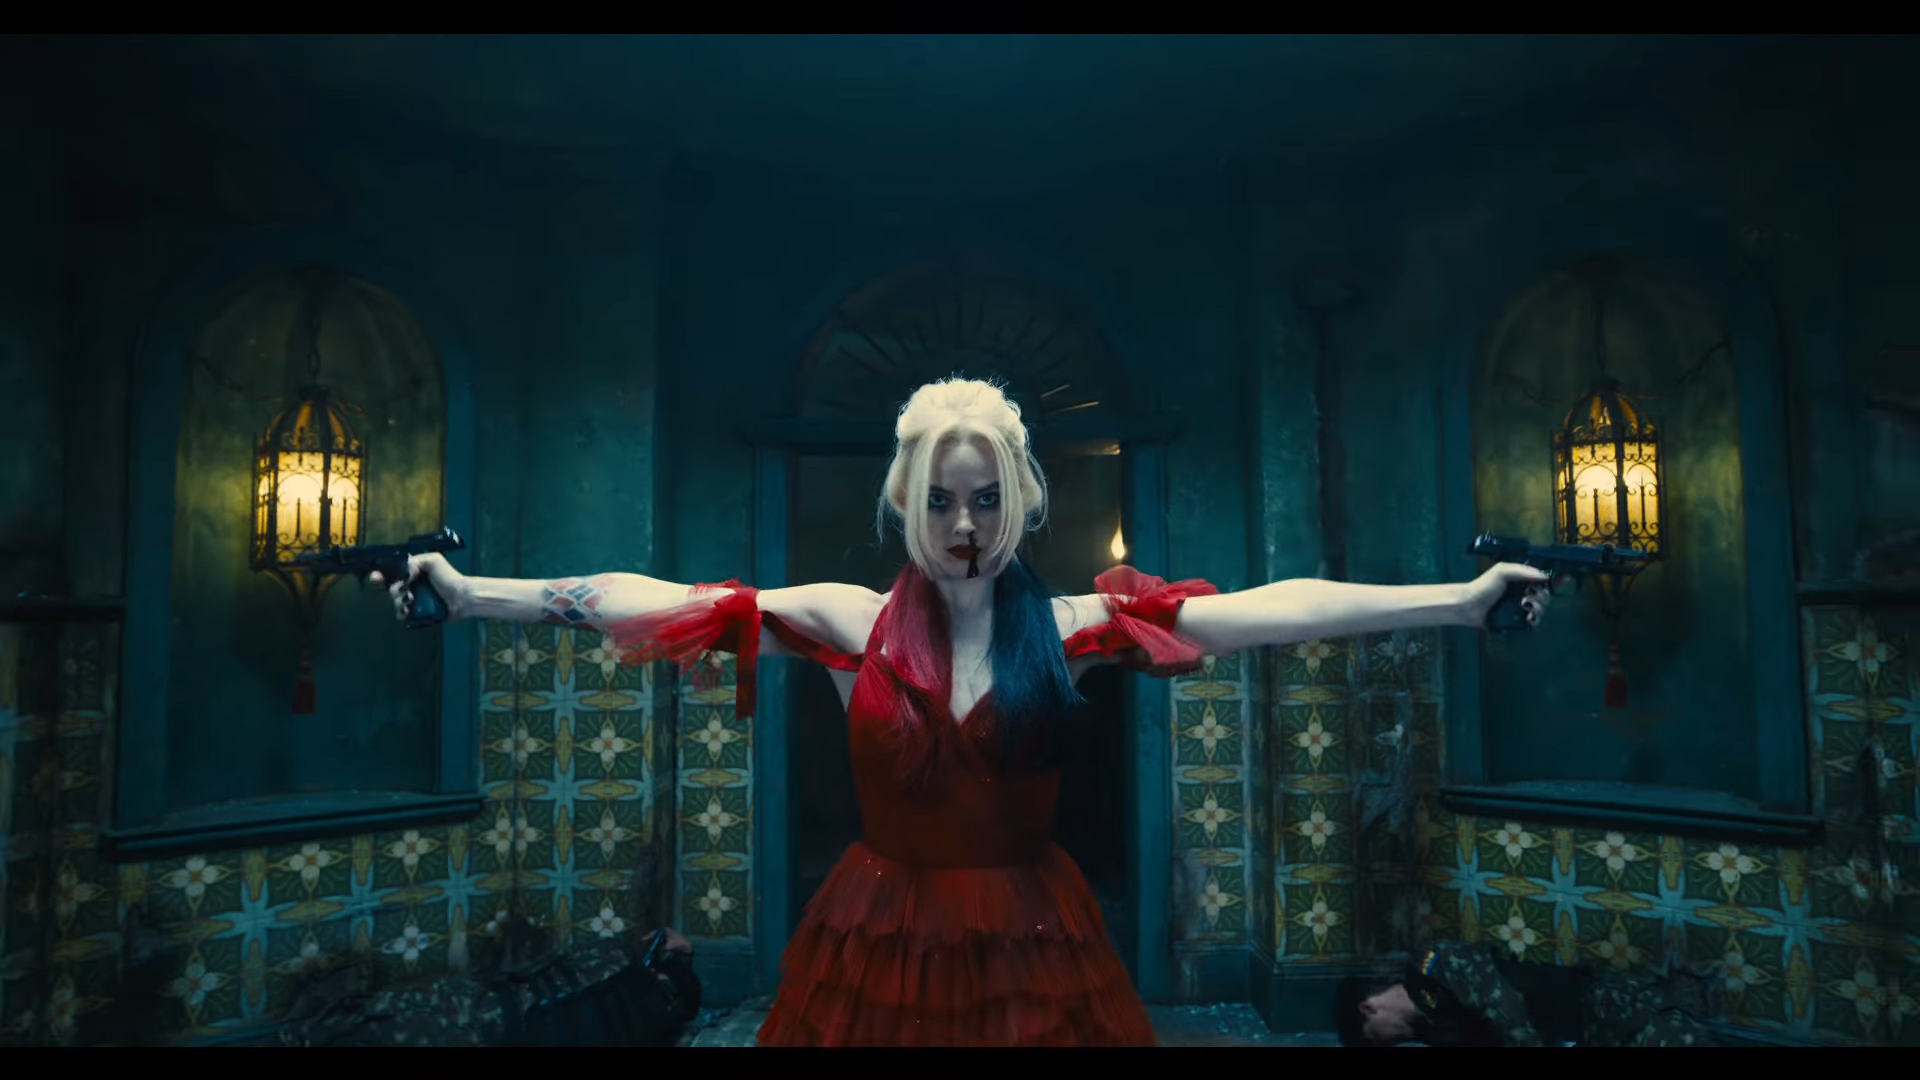 THE-SUICIDE-SQUAD-Rebellion-Trailer-1-5-screenshot-119